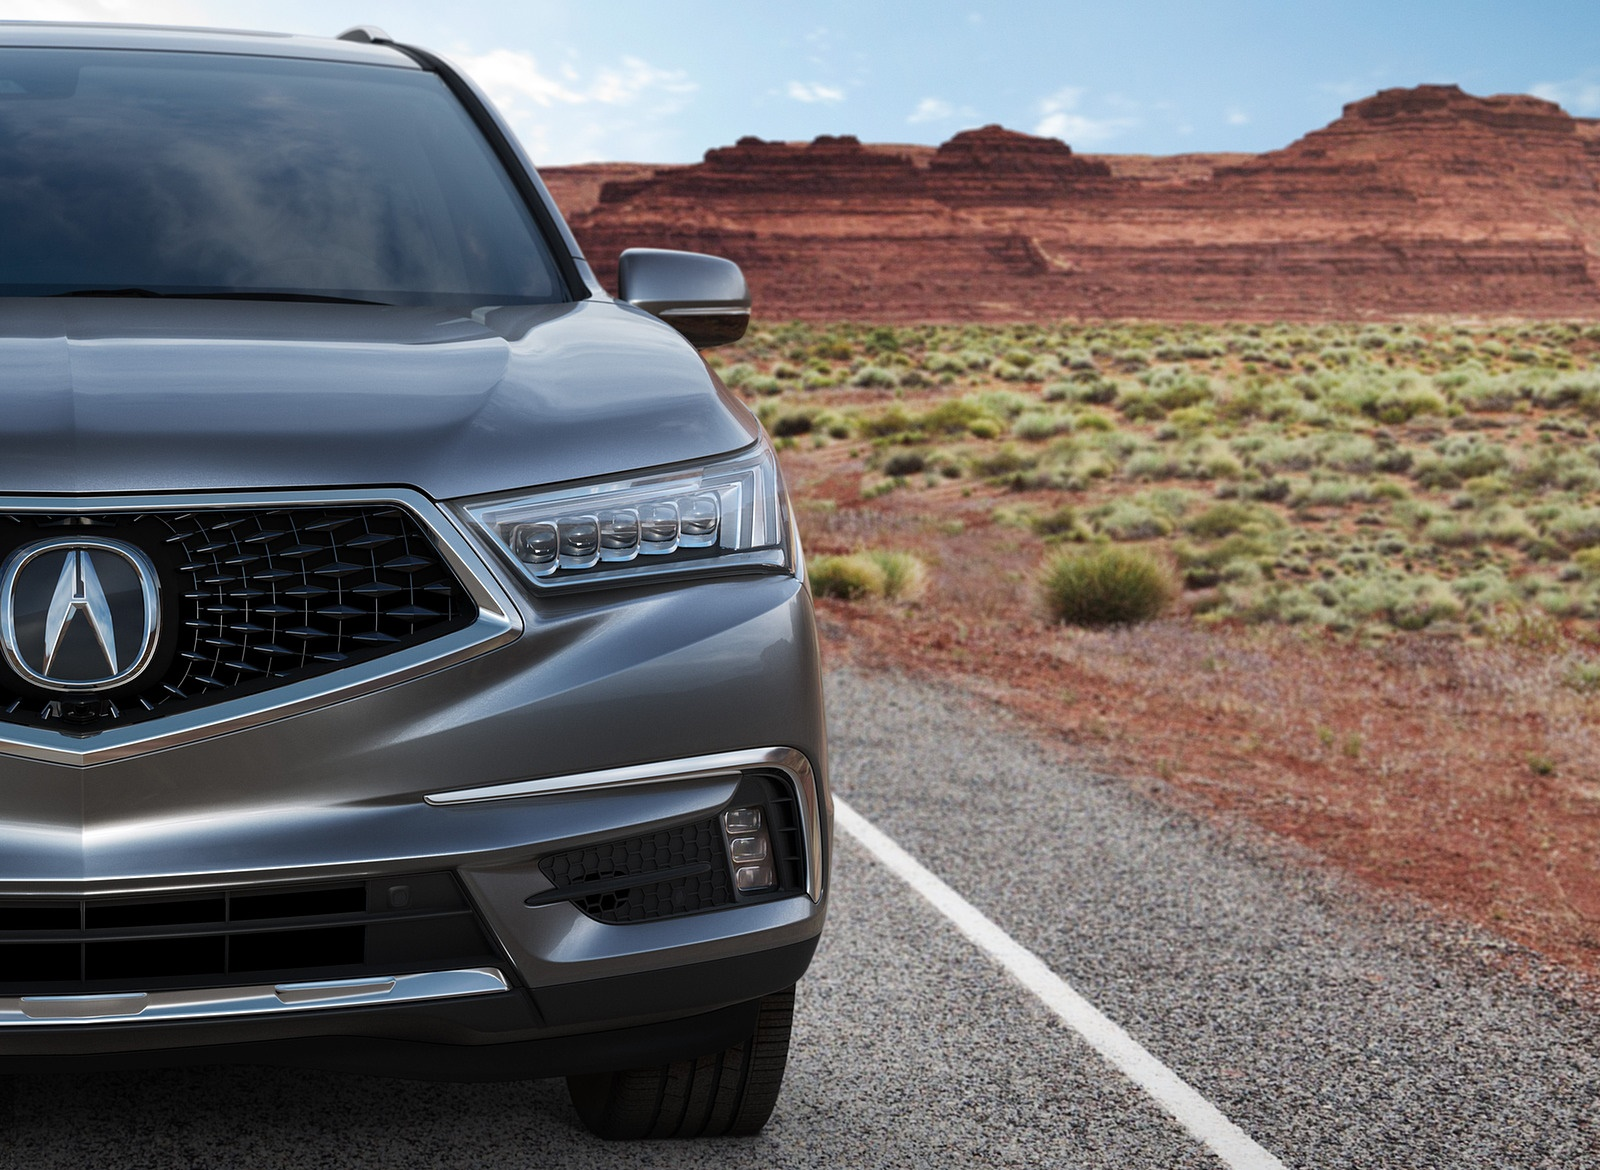 2018 Acura MDX Detail Wallpapers (13)